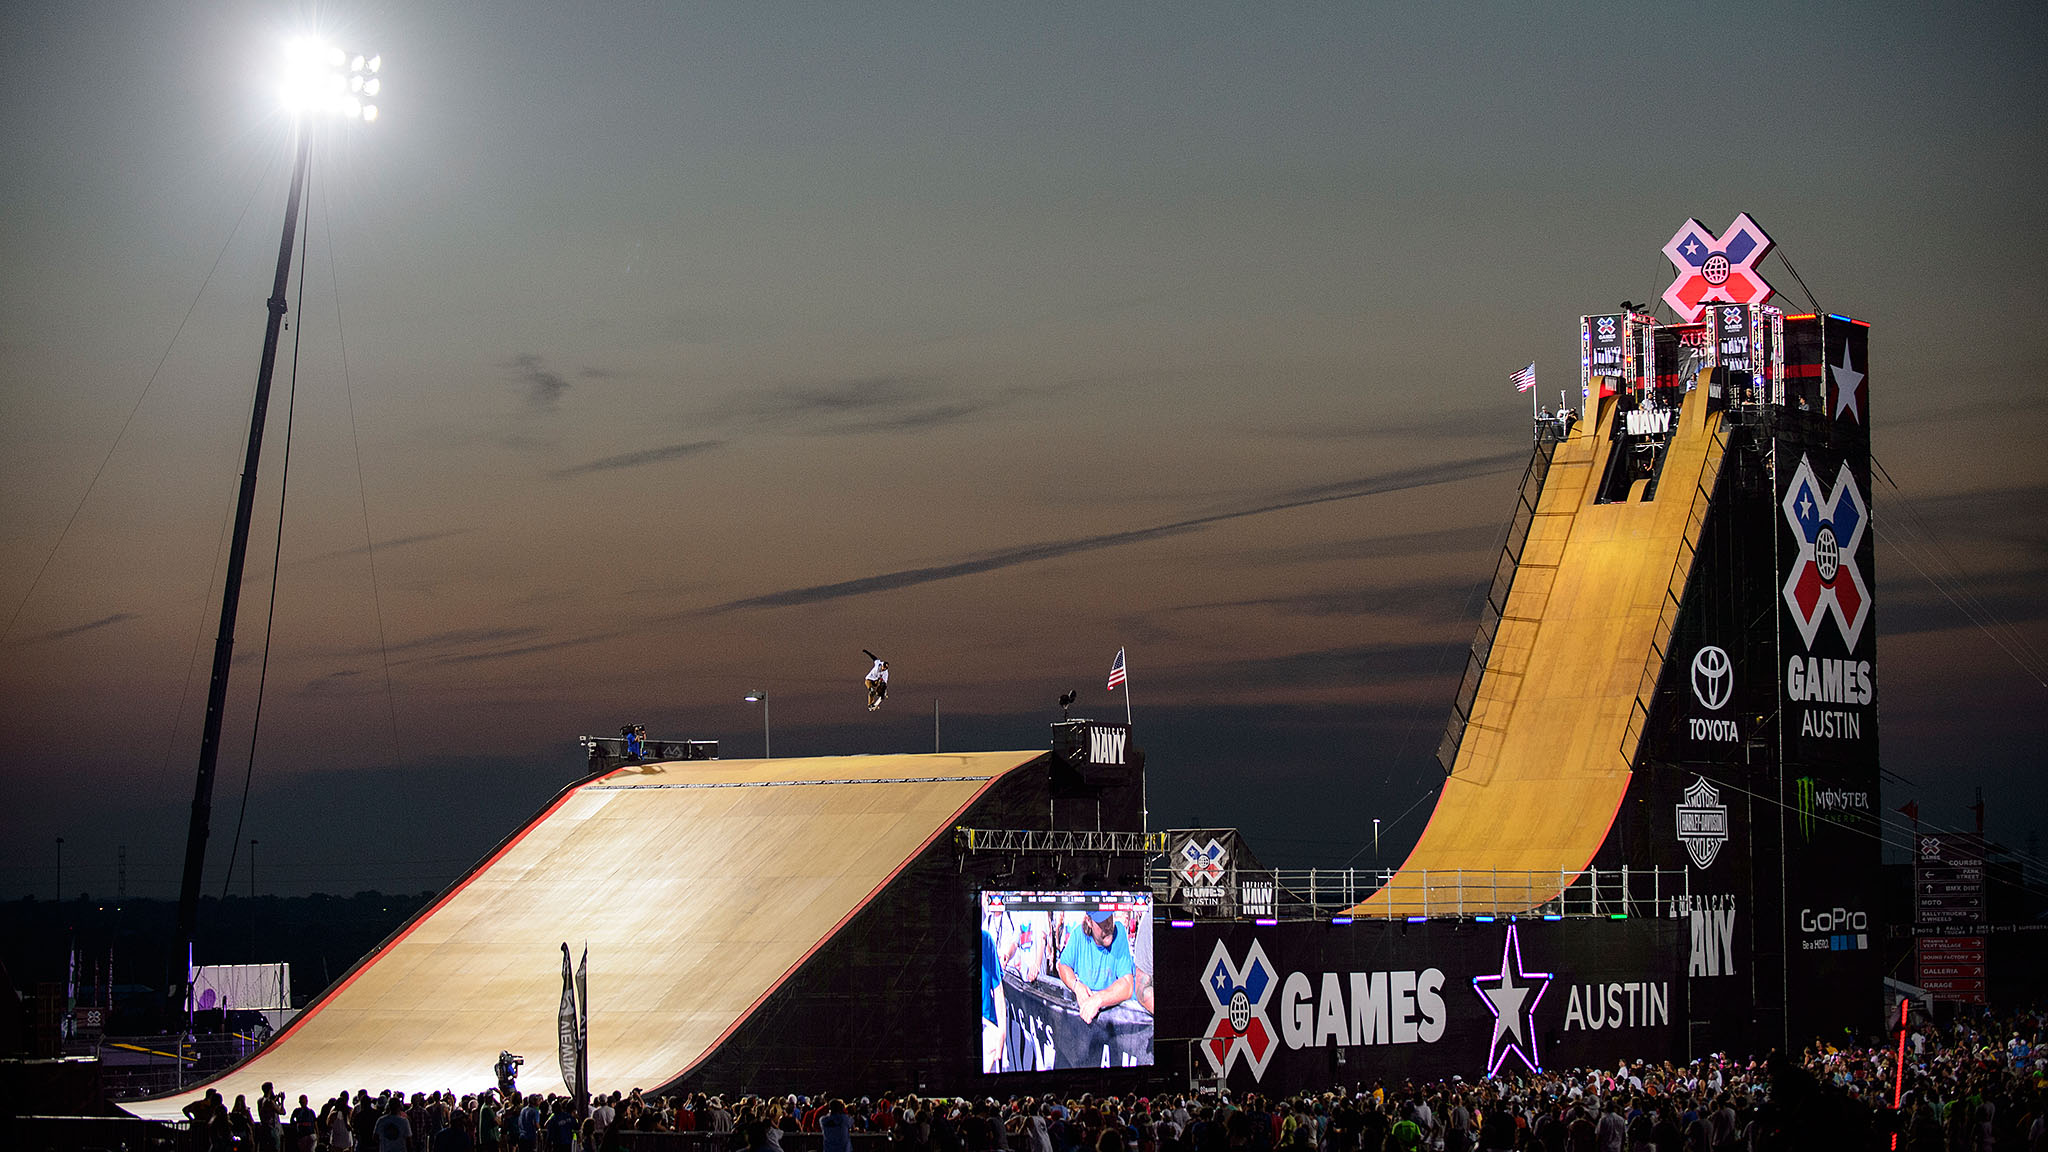 In what appears to be something of a tradition at X Games, Bob Burnquist sustained an injury prior to competing in Skateboard Big Air on Friday. This time it was his left forearm, hurt in Vert practice earlier in the week. X-rays revealed a non-displaced stable fracture, and with a protective split, he still managed to land a switch 540 lien, grabbed with his injured appendage, followed by an Indy 720 to fakie on the quarterpipe, all of which won him his eighth Big Air gold.